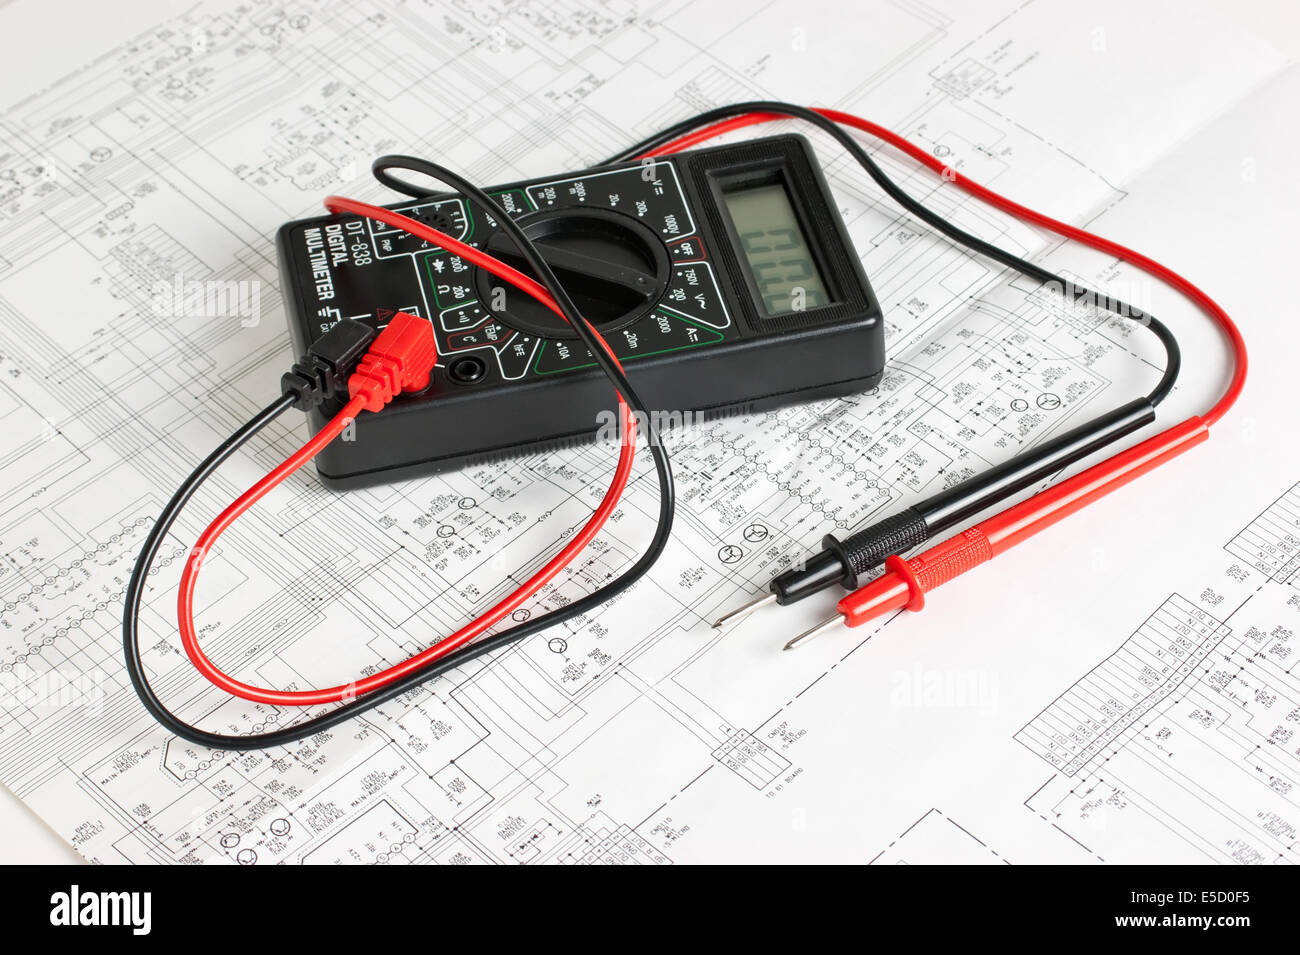 multimeter on the background of electronic circuits - Stock Image